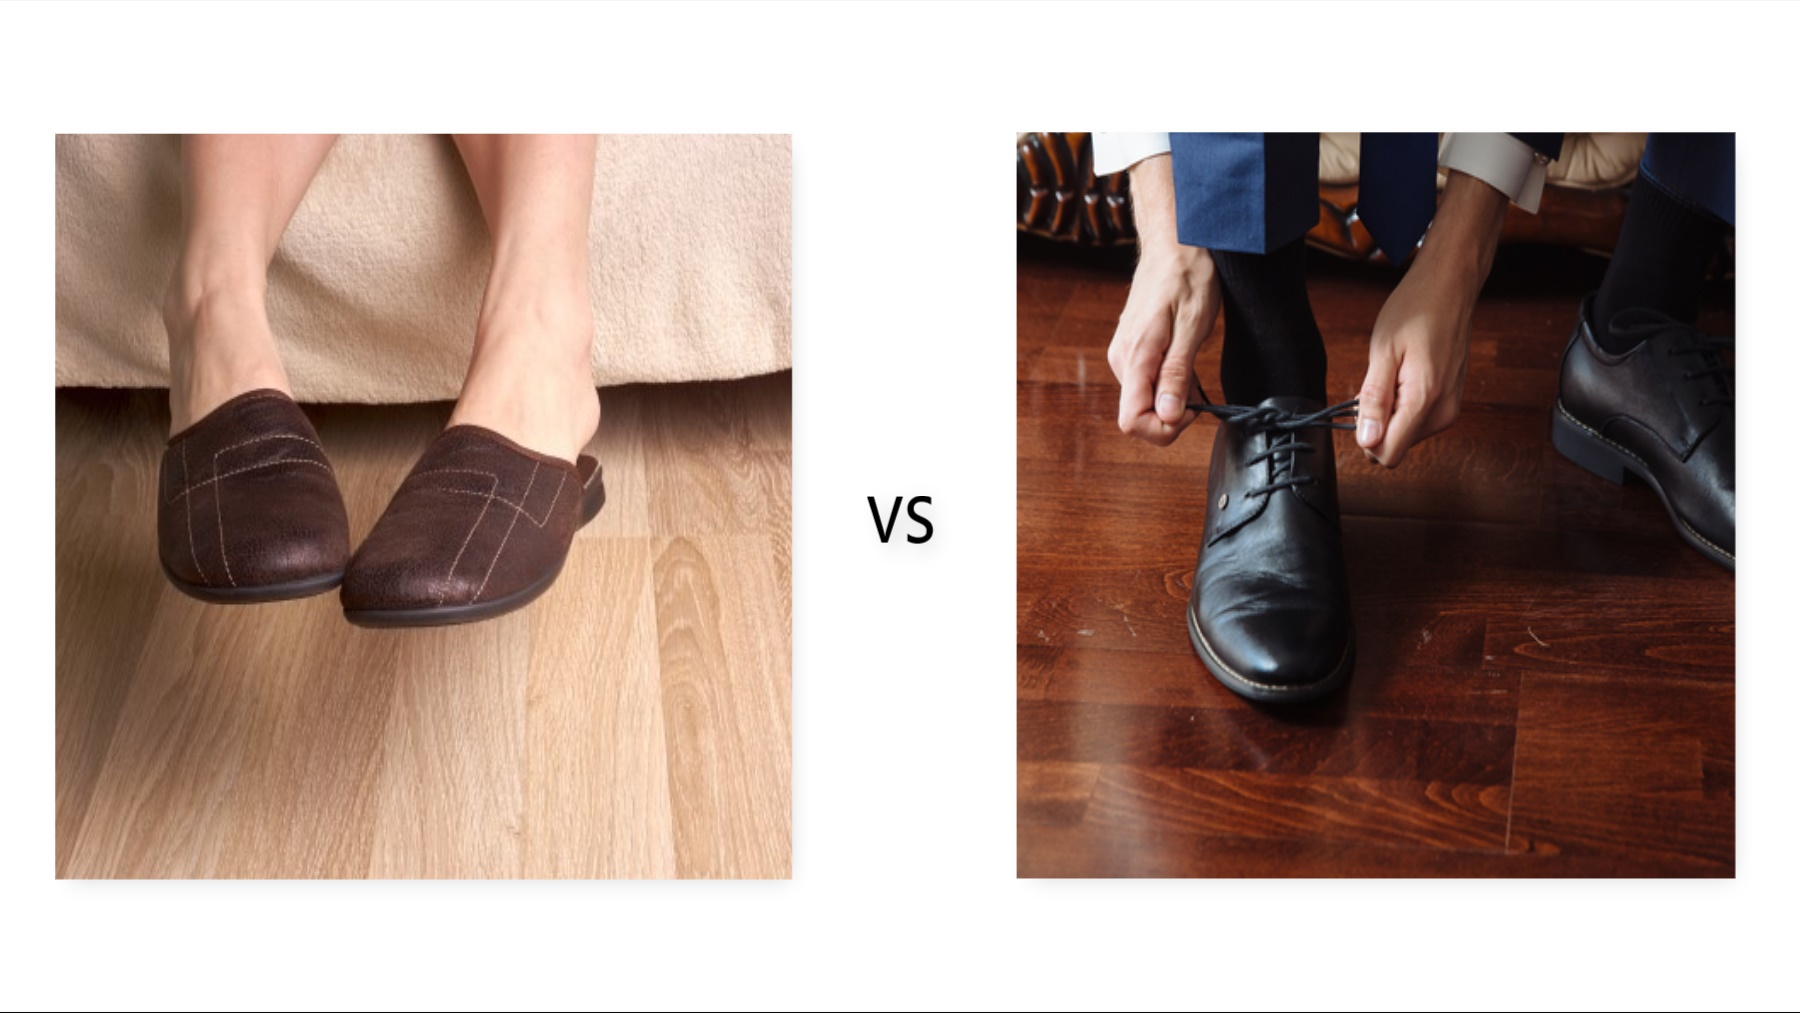 Best-Slippers-Shoes-vs-Slippers